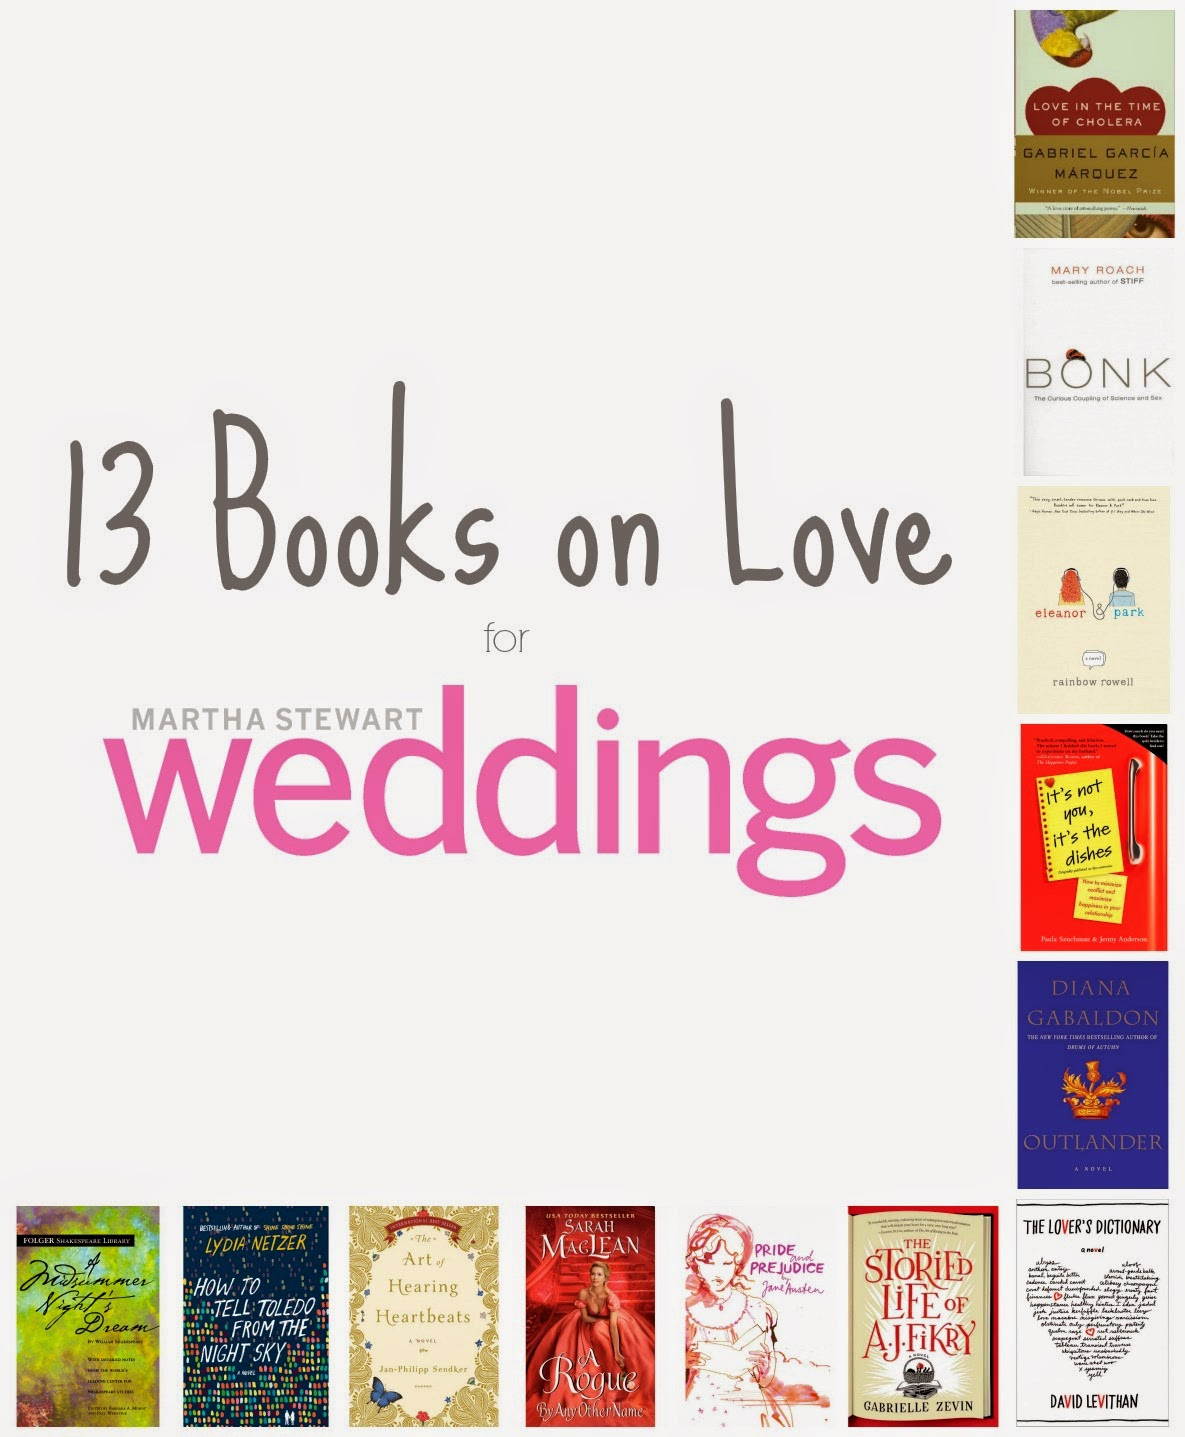 books on love, romance books, romantic books, martha stewart weddings